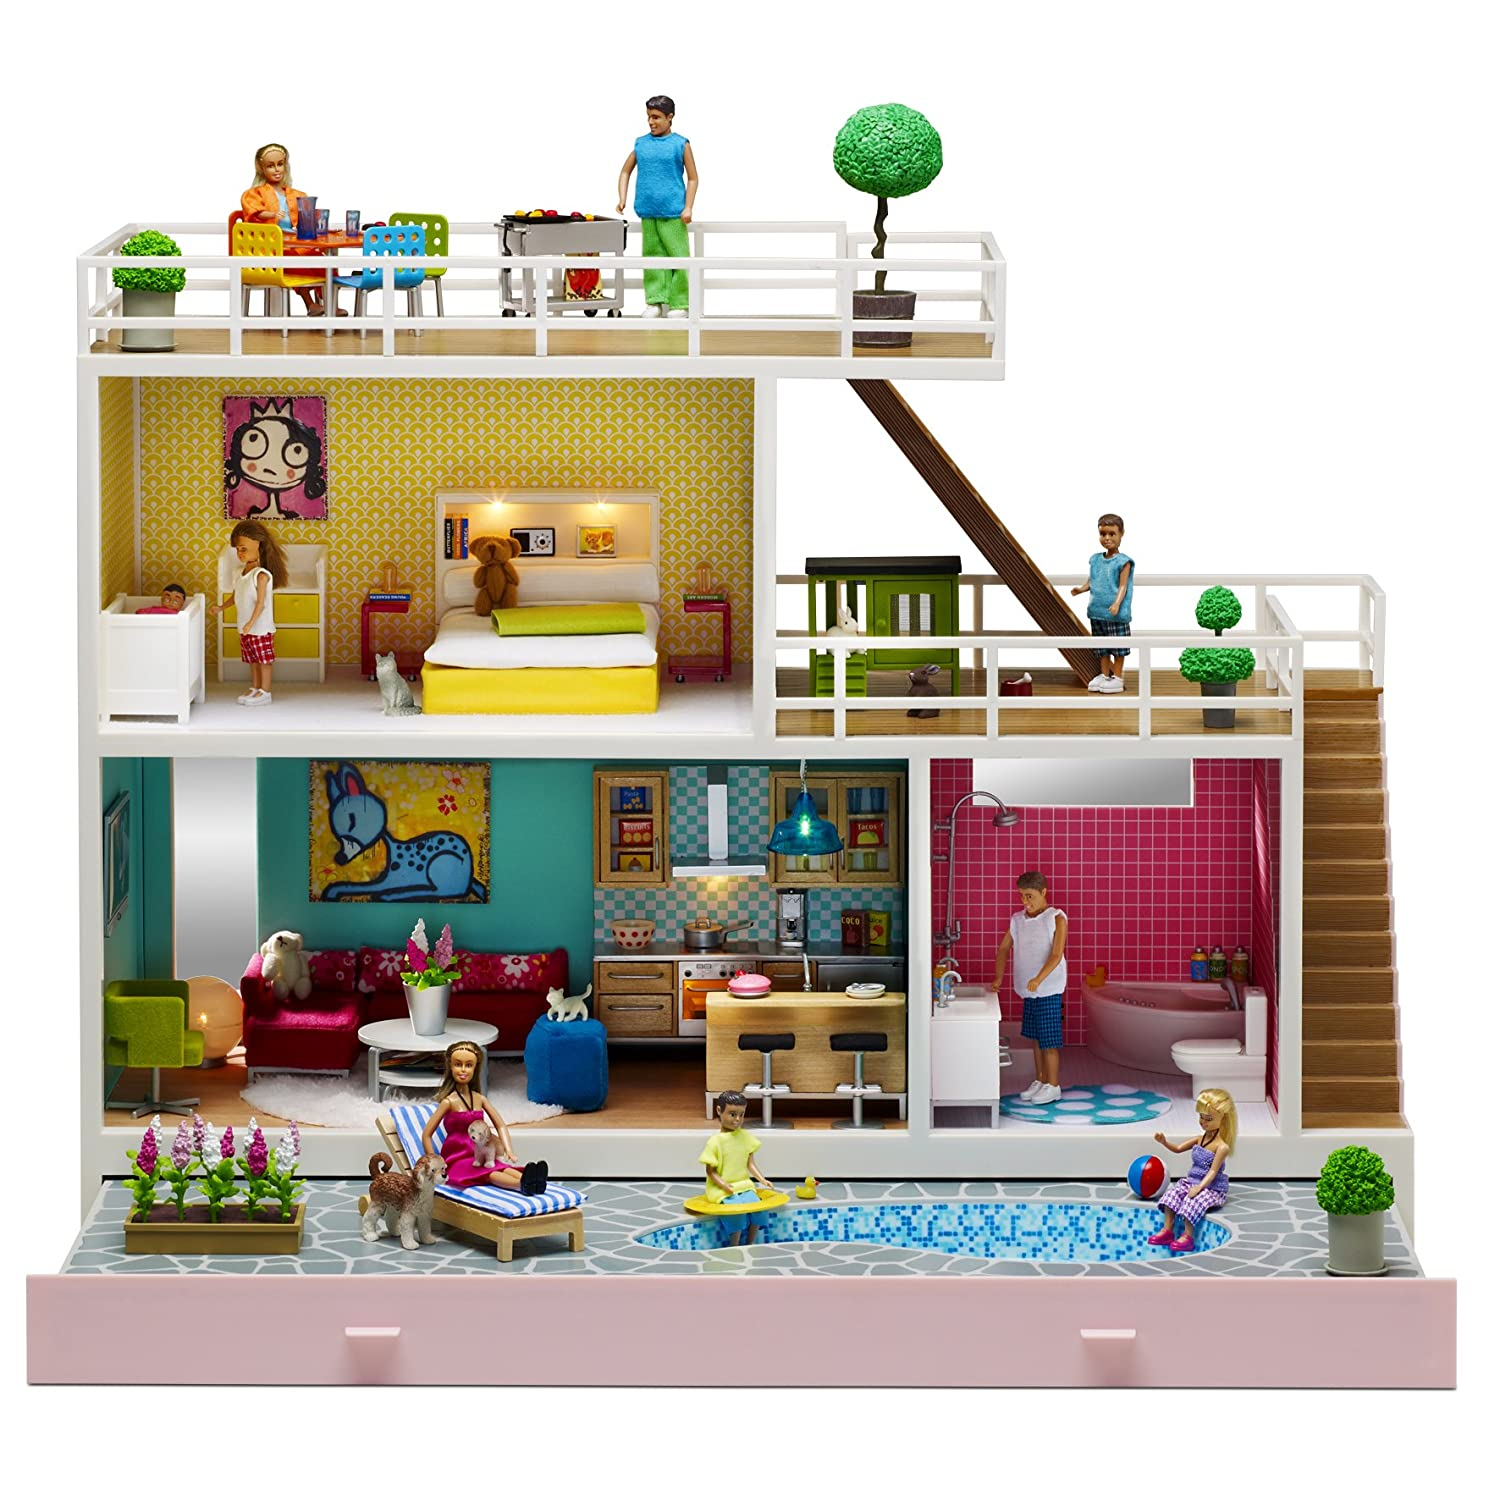 12d788079492 Amazon.com: Lundby 1:18 Scale Stockholm Doll's House: Toys & Games